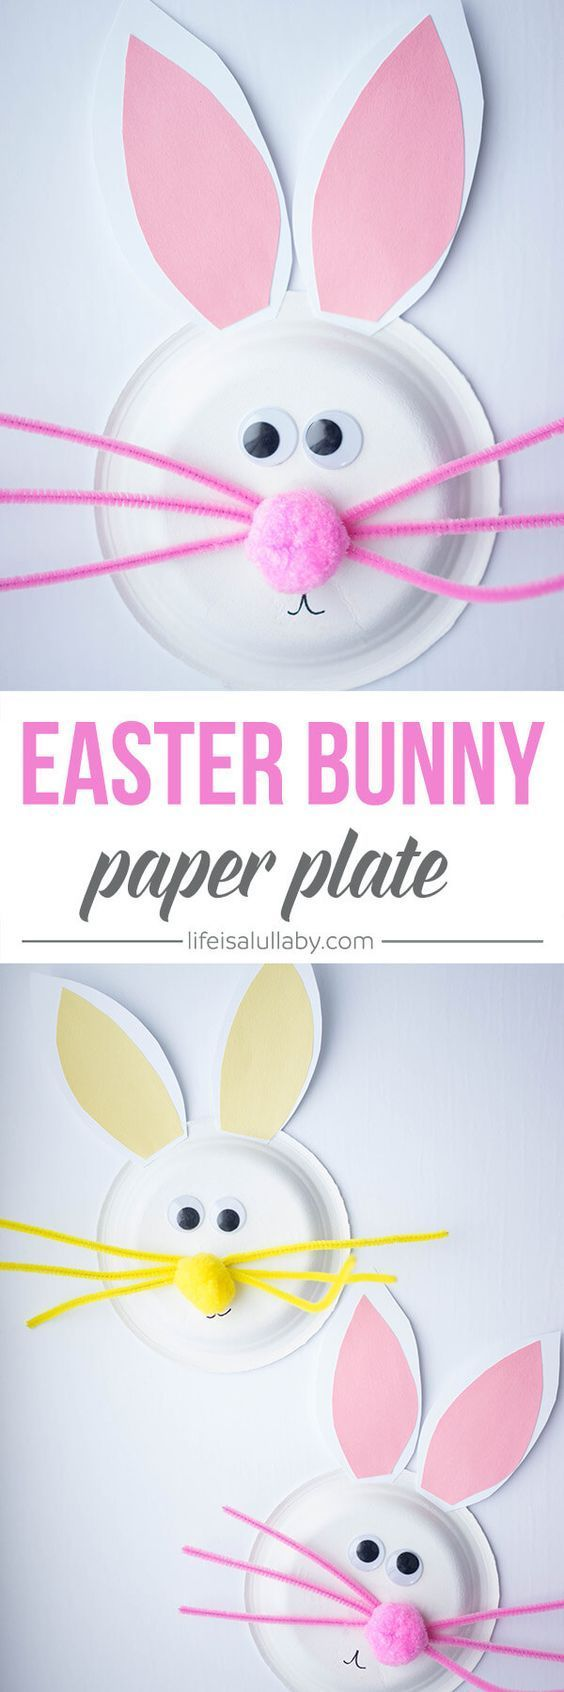 This paper plate Easter Bunny is so cute! I love how easy this is to make and a really fun kids craft to do with the kids!  sc 1 st  Pinterest & Paper Plate Easter Bunny Craft | Easter bunny Easter and Bunny